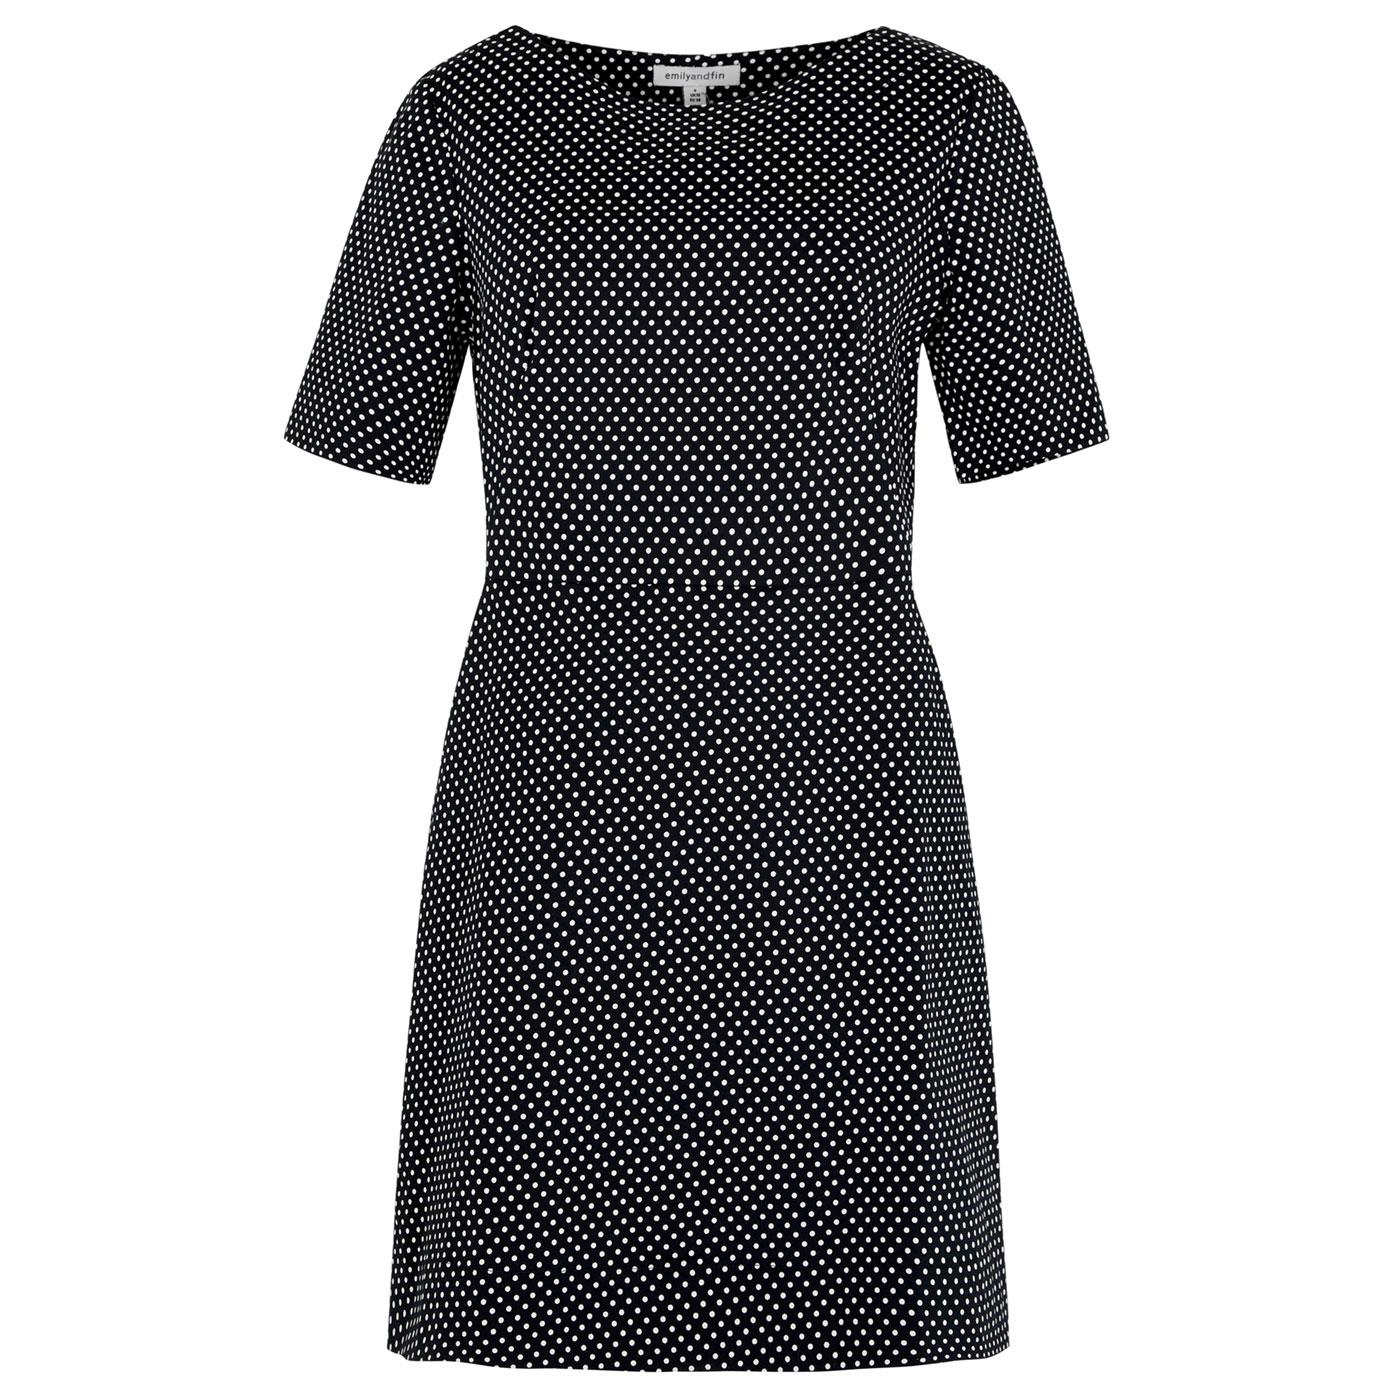 Aggie EMILY & FIN Retro Mini Polkadot Spot Dress